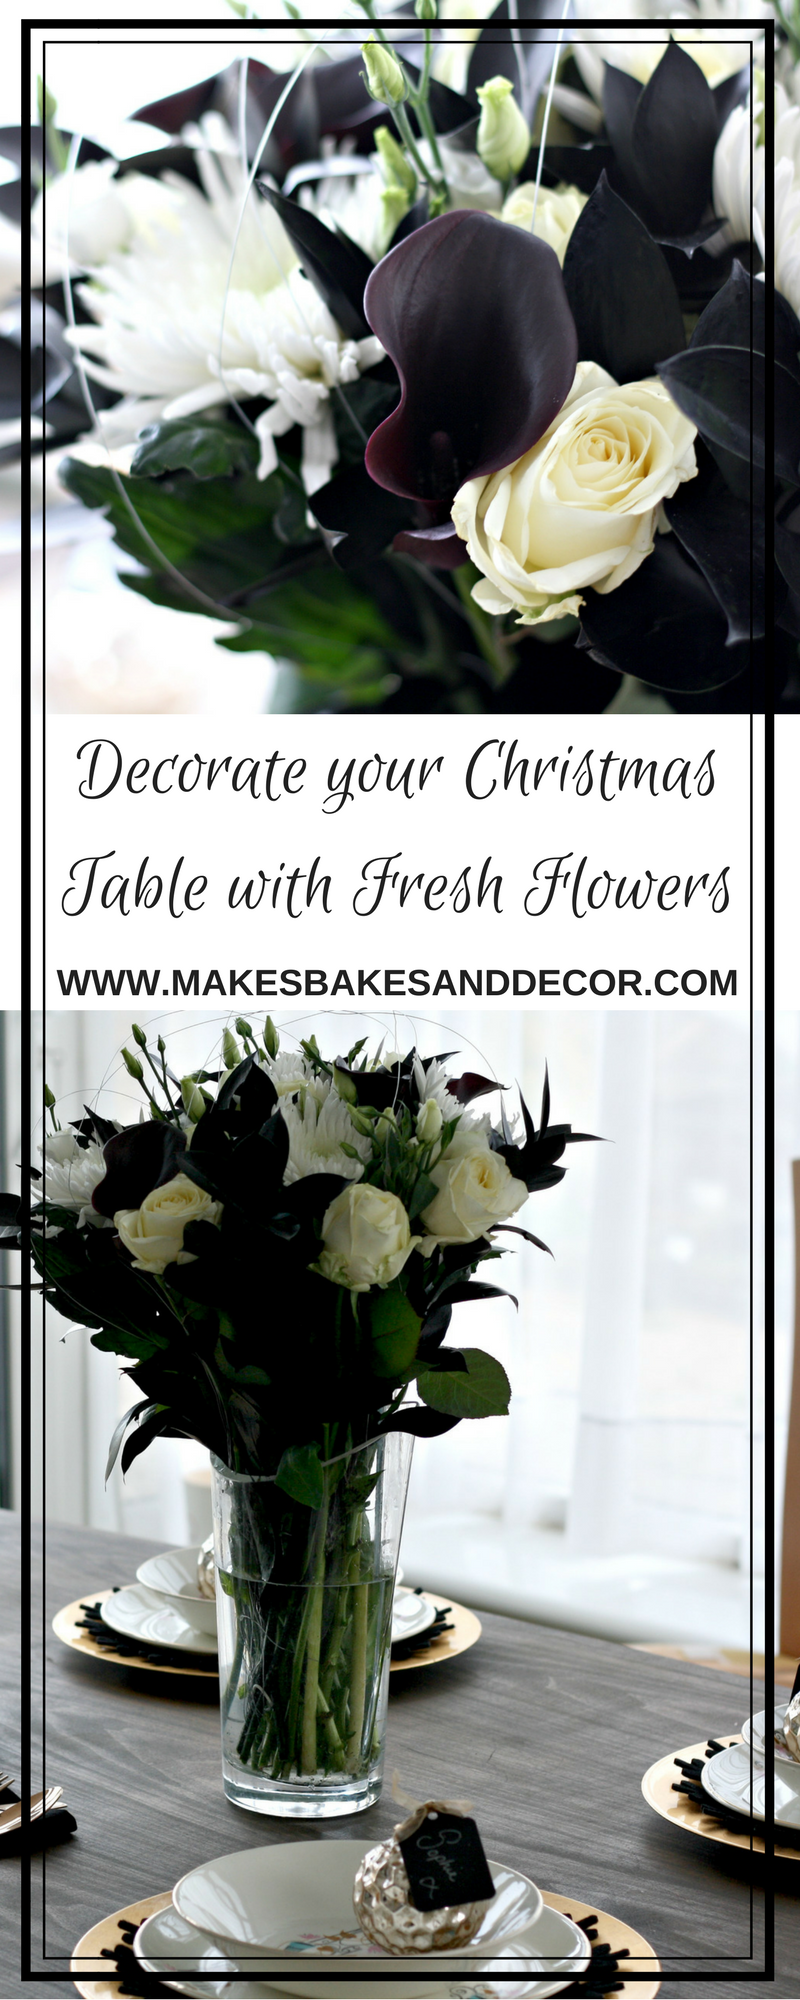 decorate your christmas table with fresh flowers